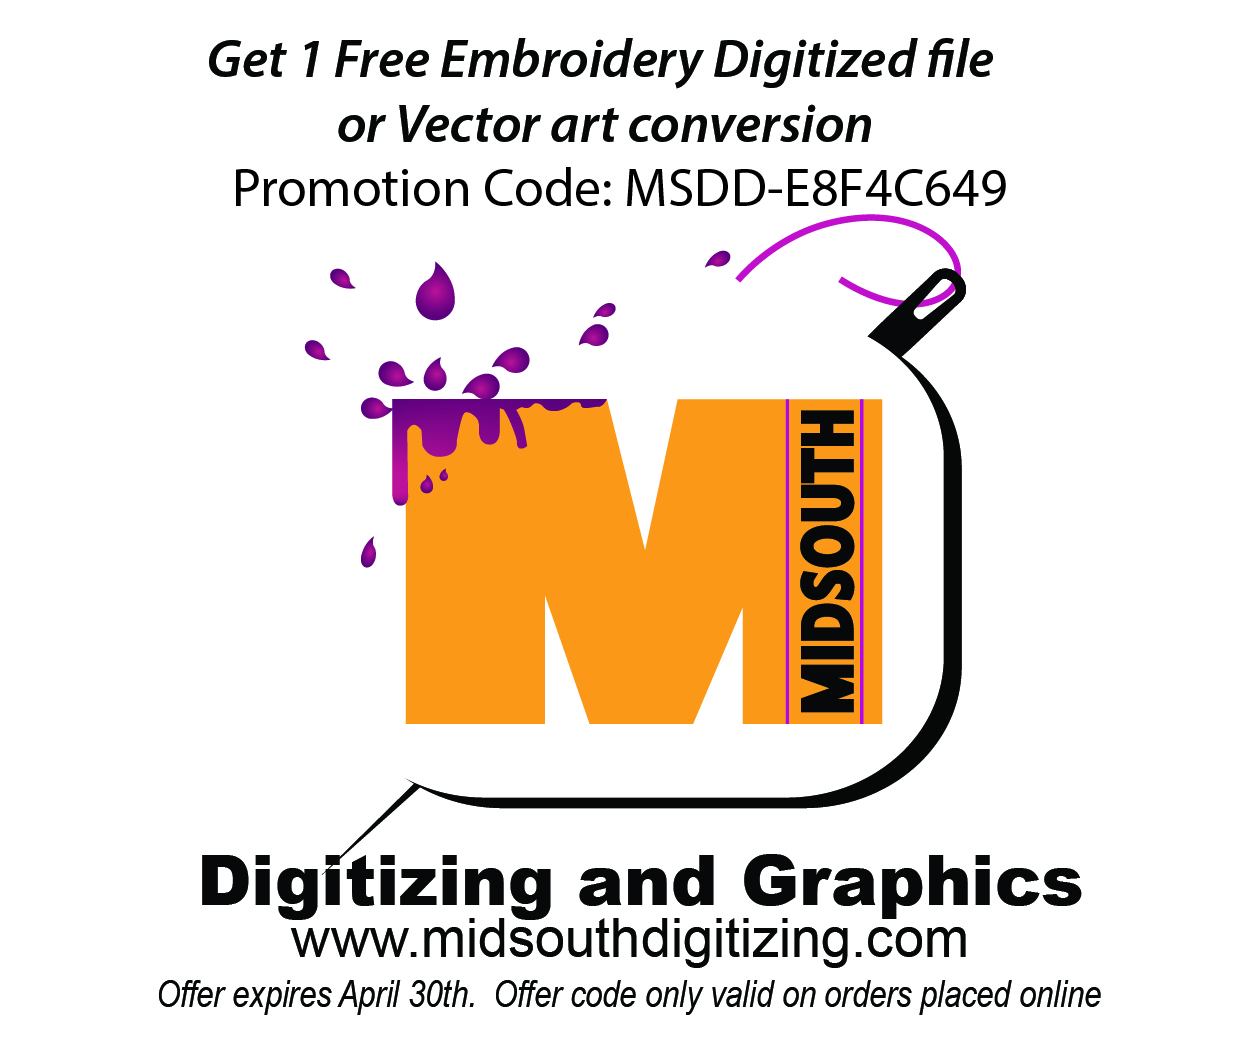 Advertisement: Midsouth Digitizing & Graphics